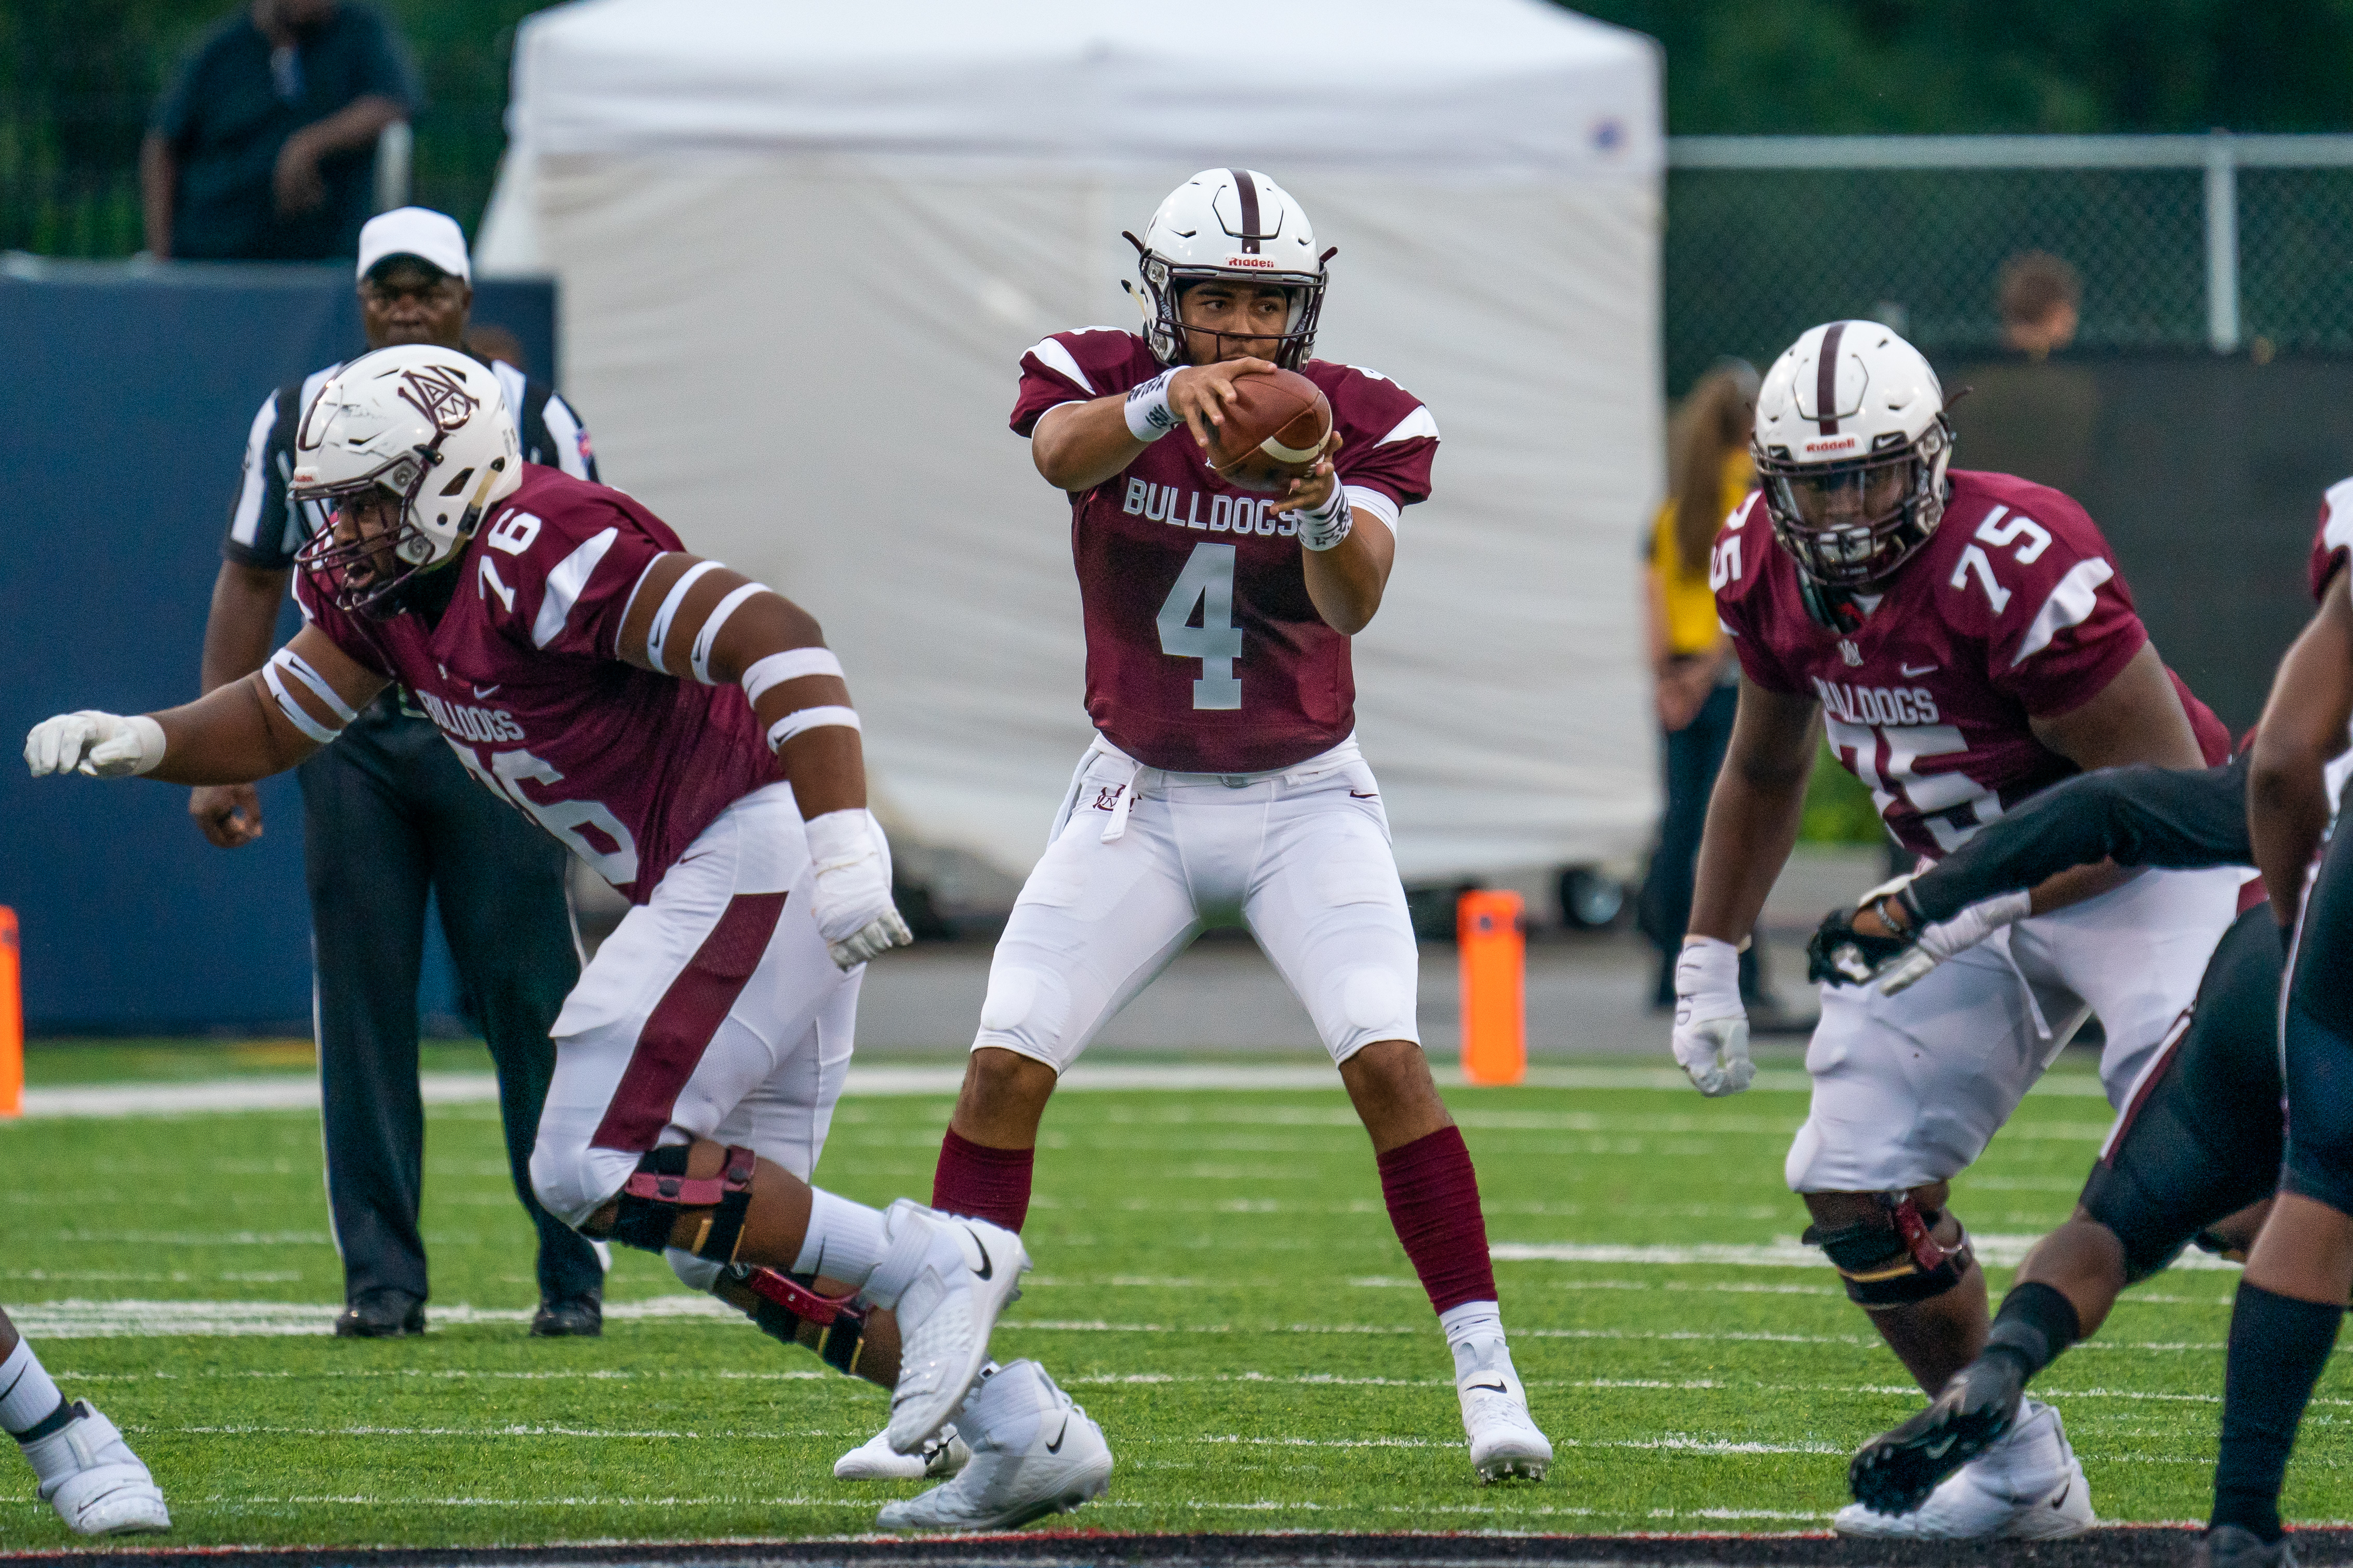 HBCU Weekend: Alabama A&M's Aqeel Glass shattering defenses